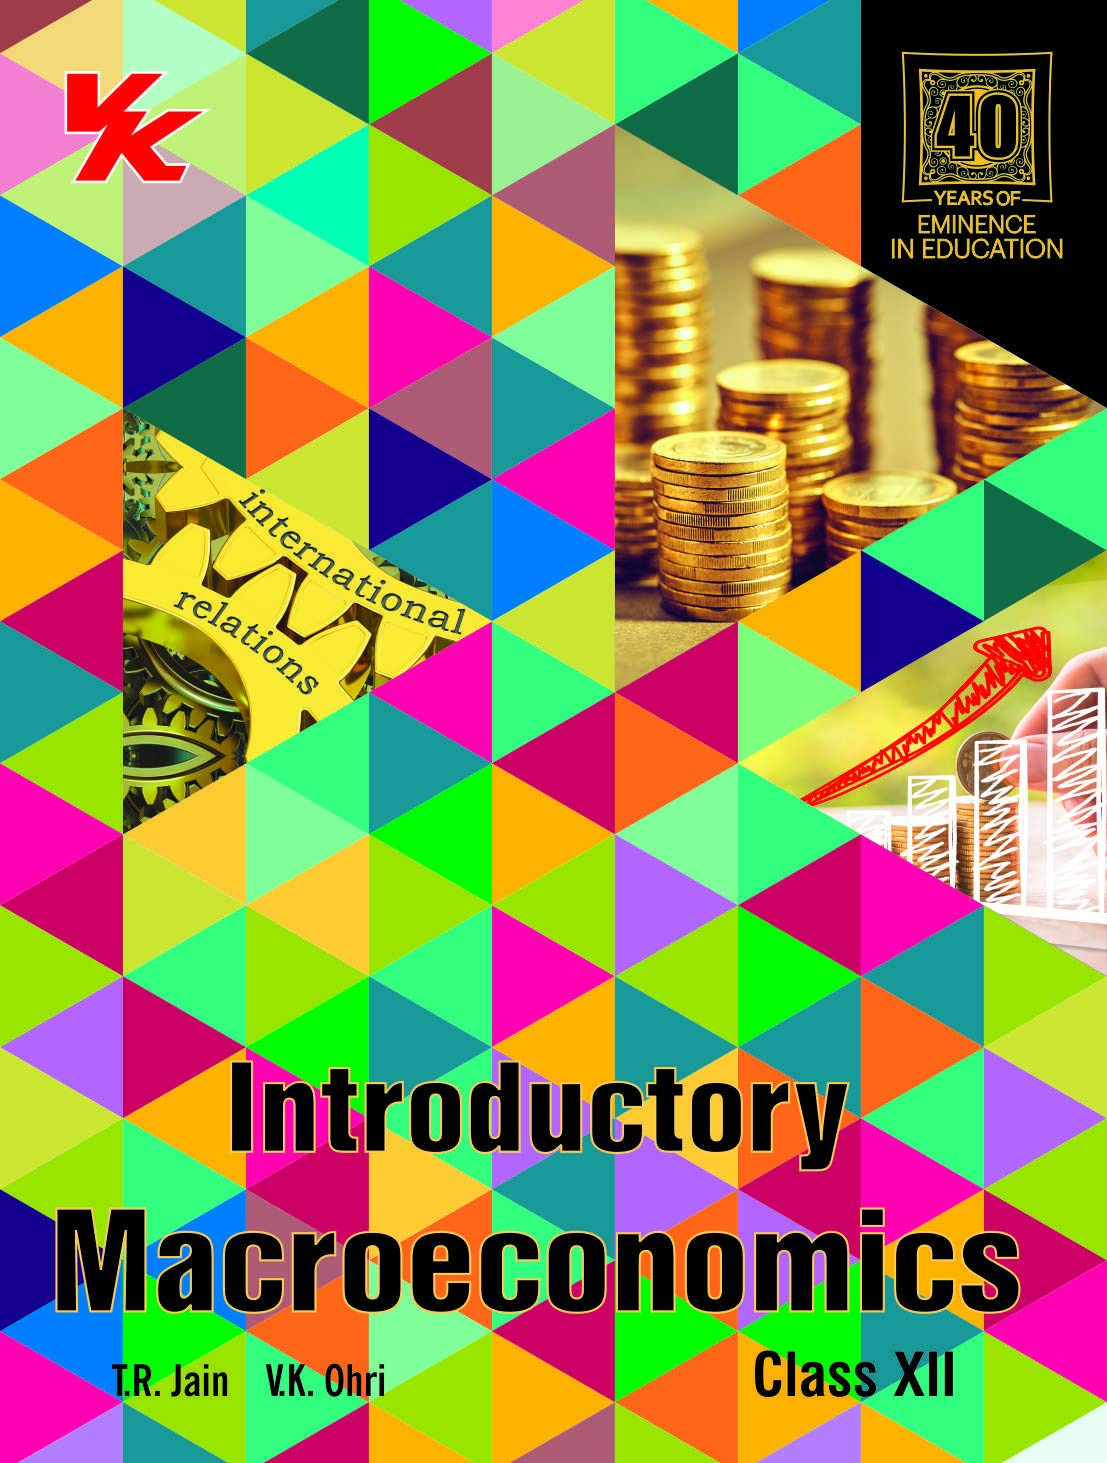 Introductory macroeconomics